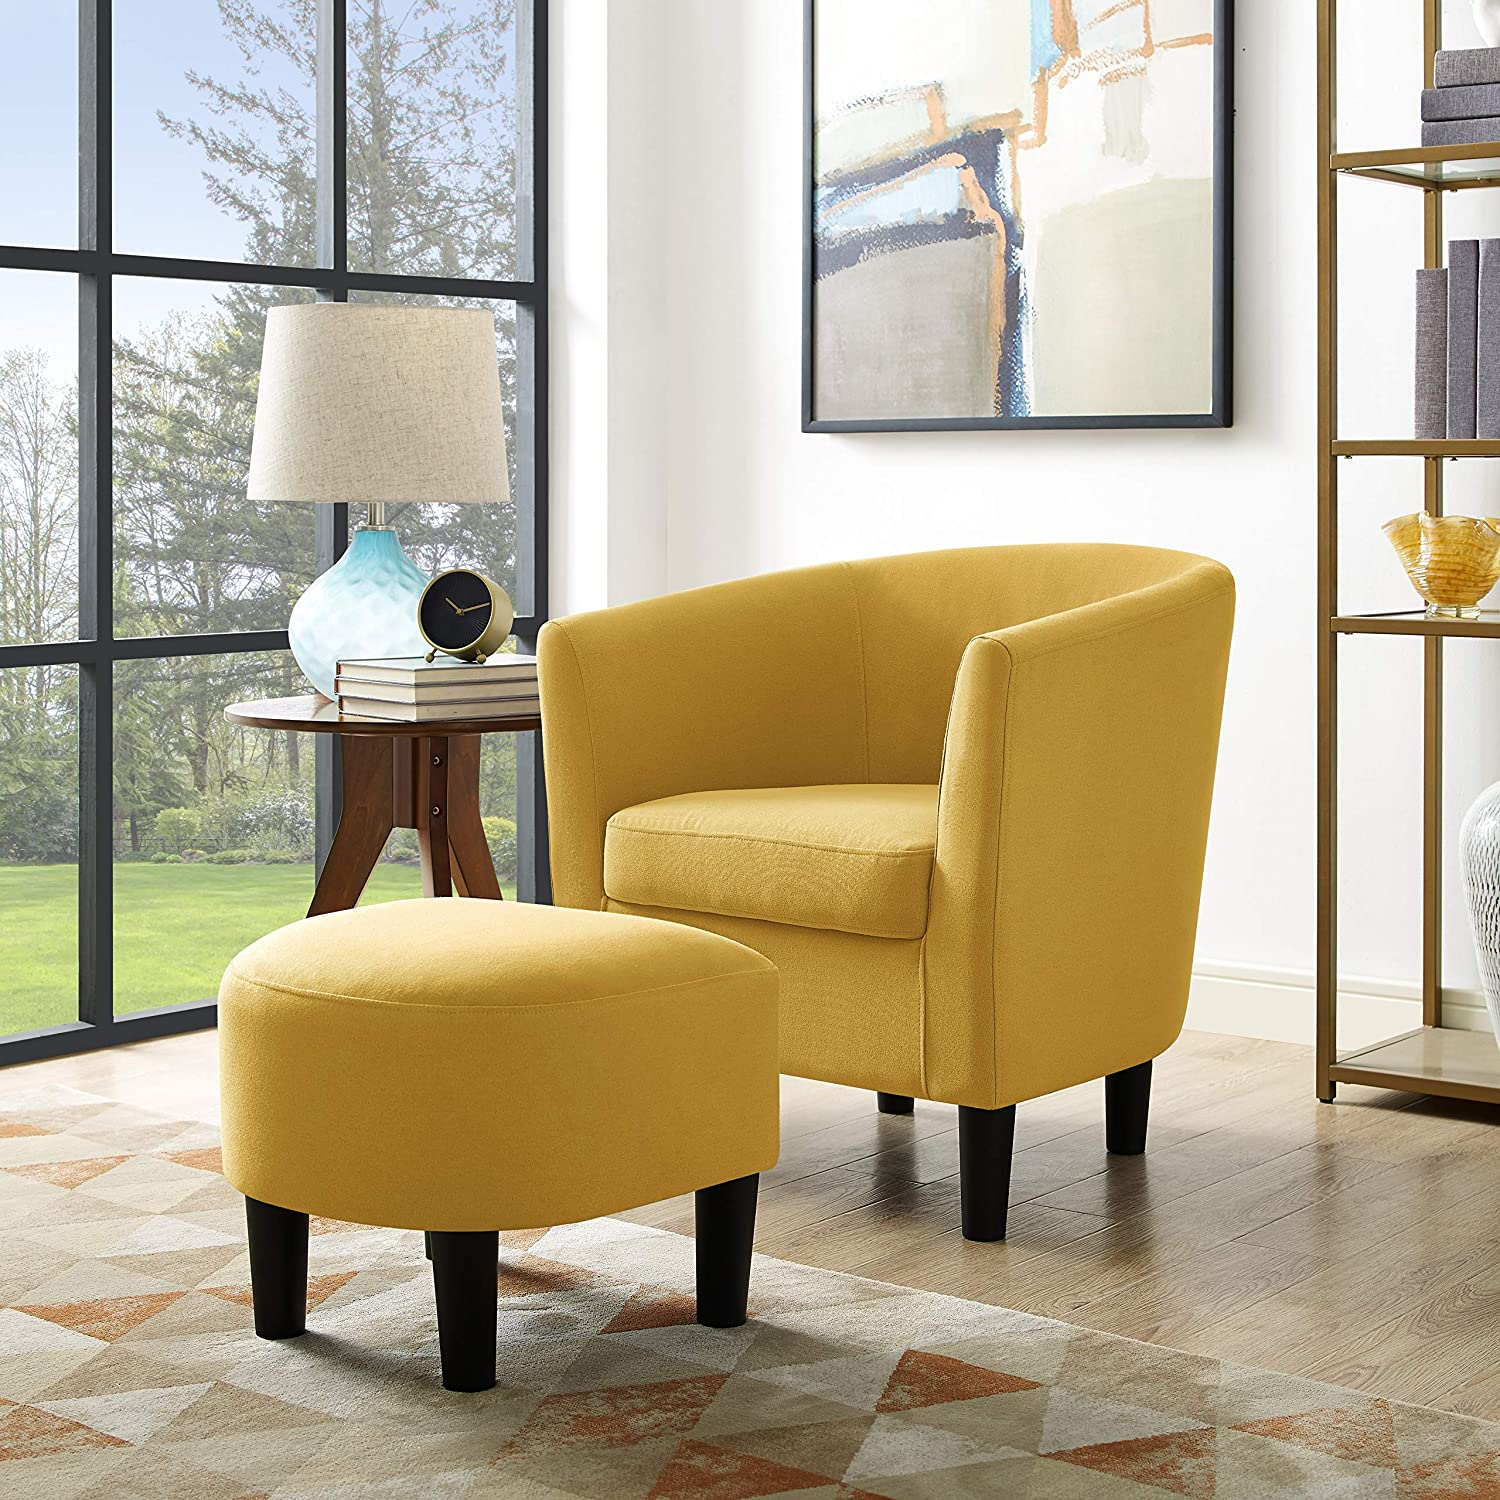 Amazon com bridge modern accent chair linen fabric arm chair upholstered single sofa chair with ottoman foot rest mustard yellow kitchen dining